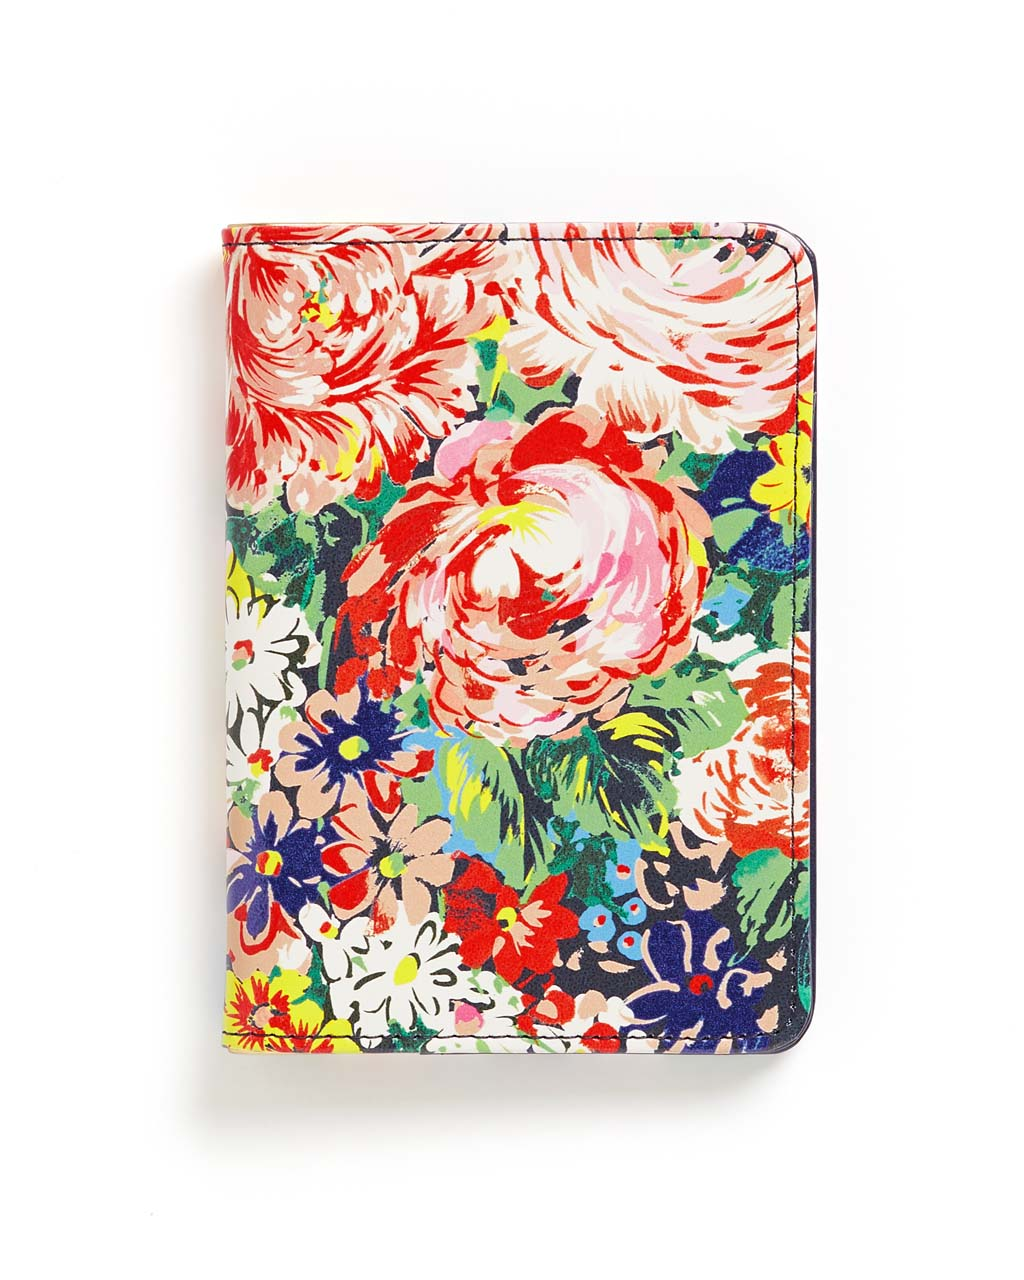 This Getaway Passport Holder comes in a colorful floral pattern designed by Helen Dealtry.